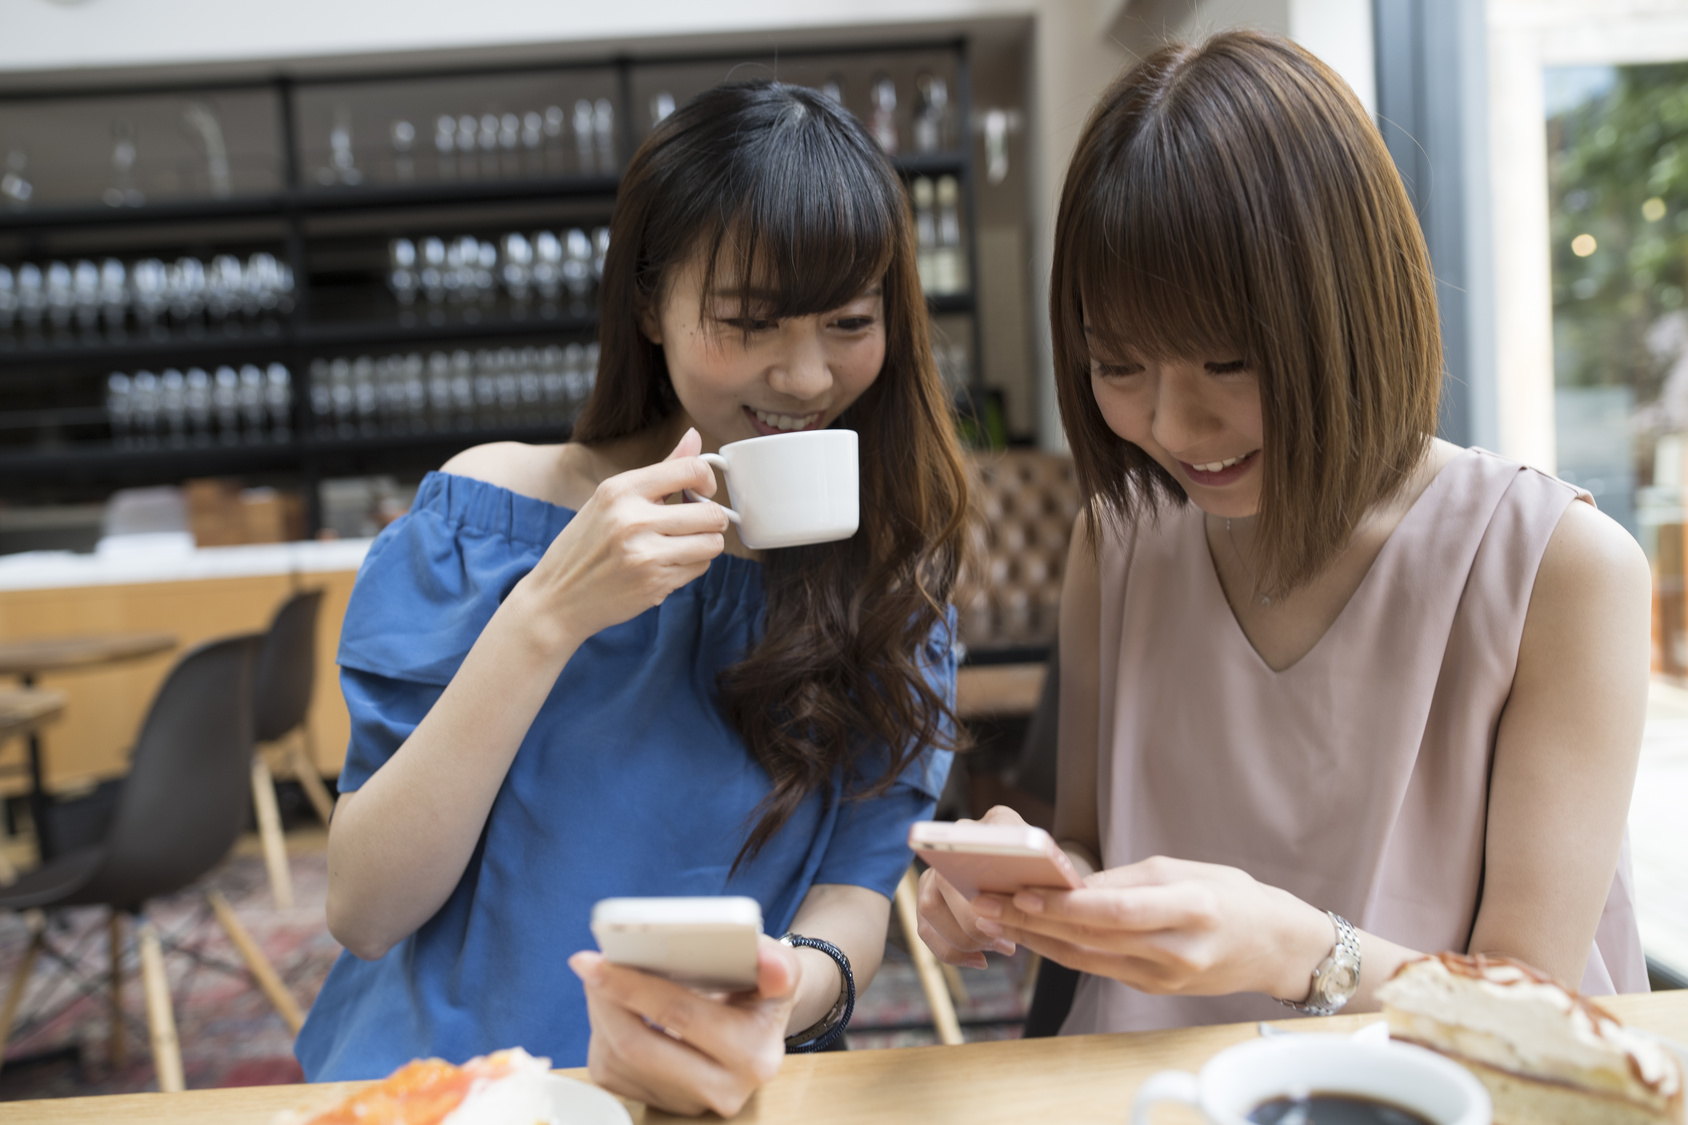 Women are chatting at a cafe while watching smartphones